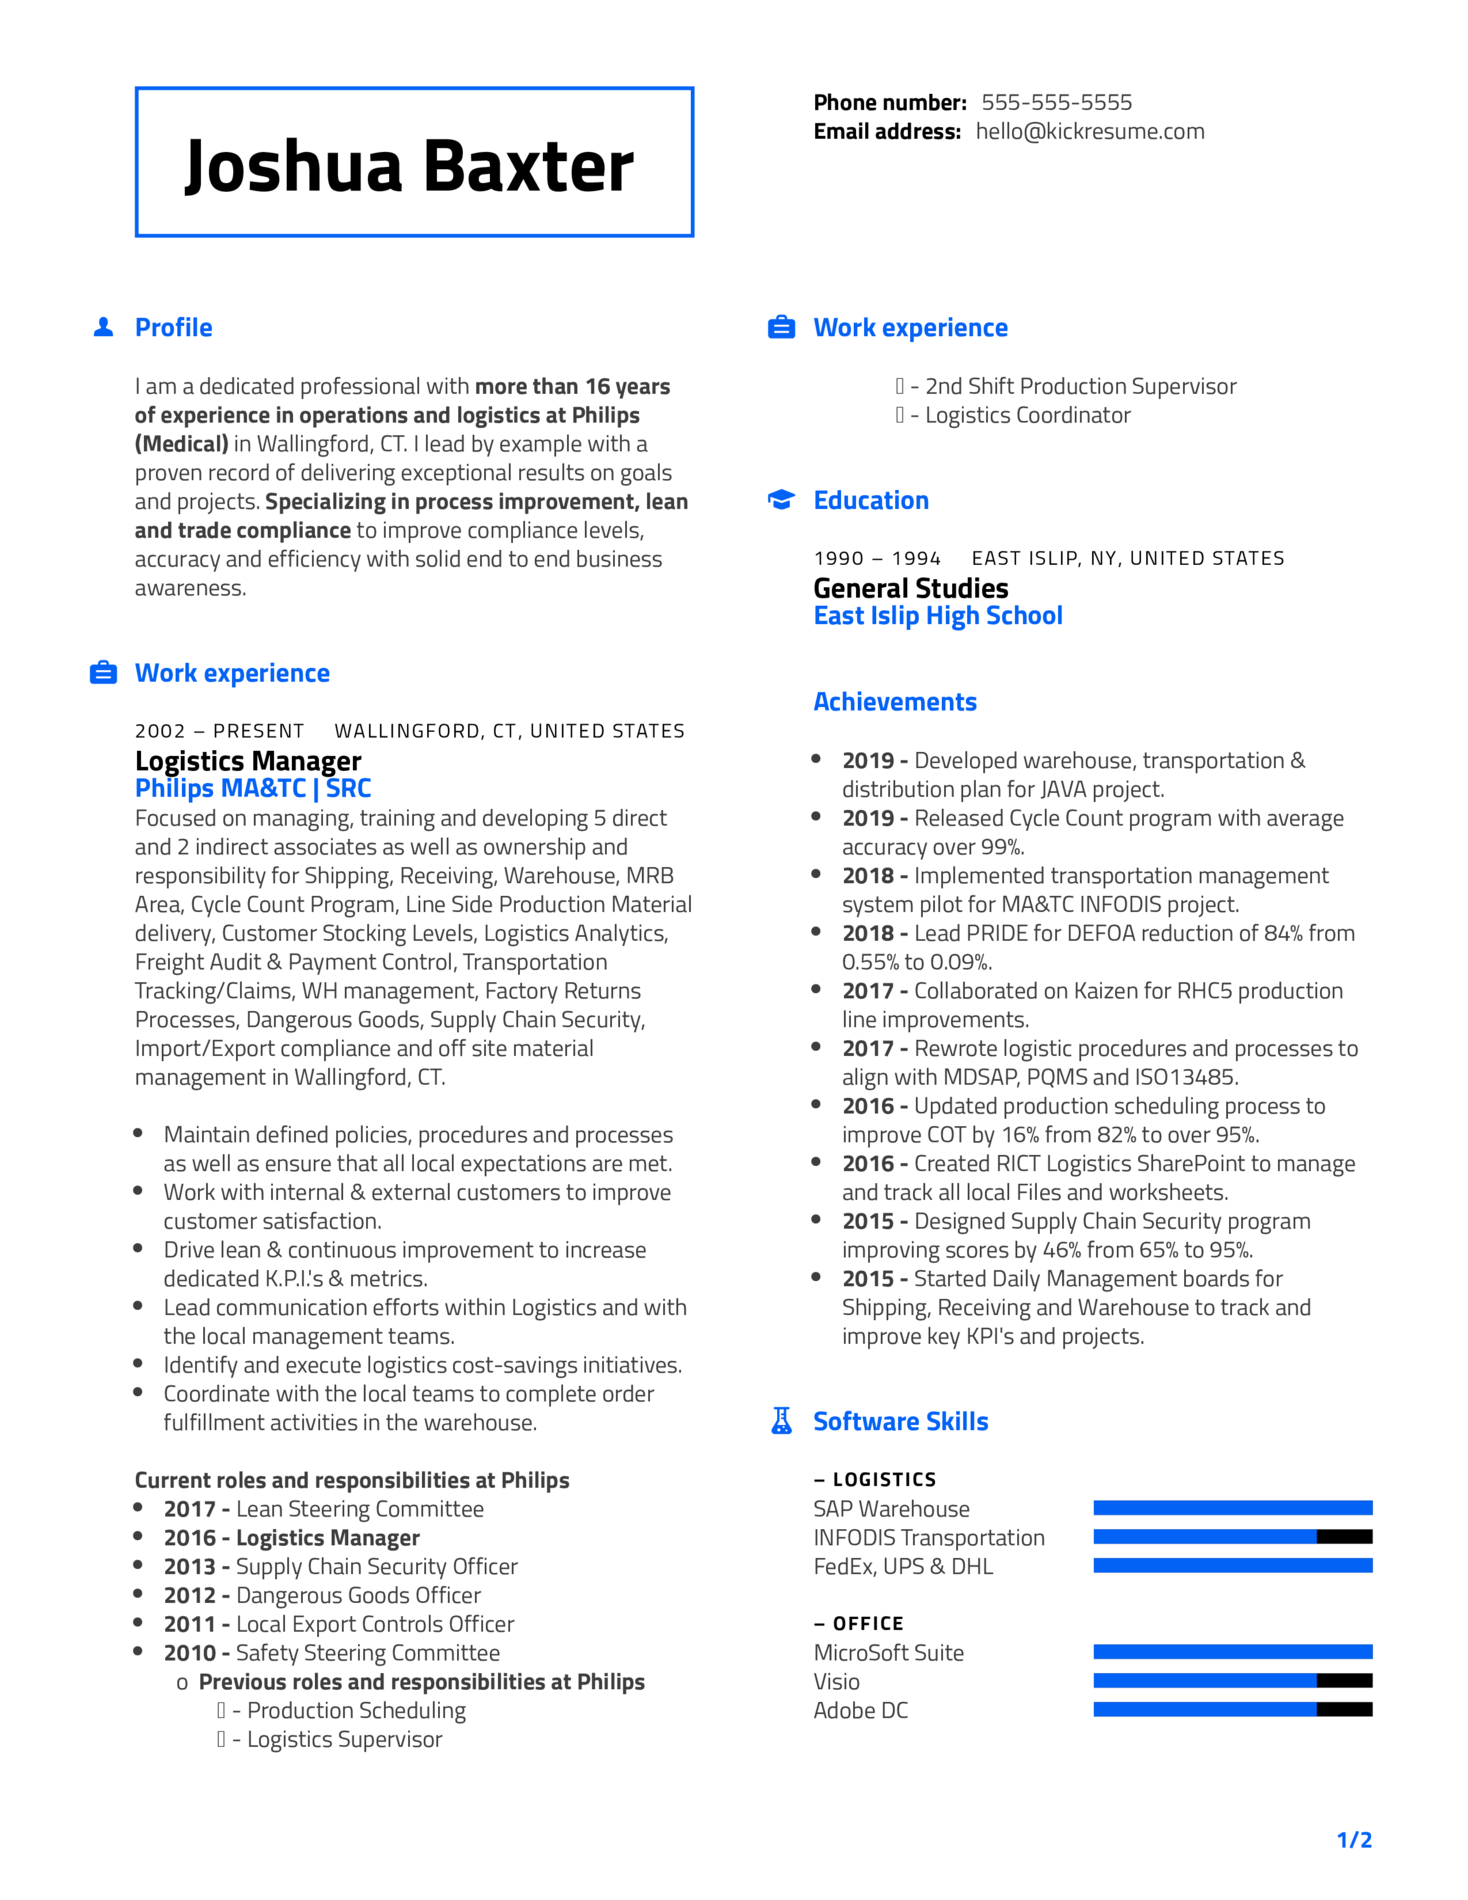 Philips Distribution Manager Resume Sample (Part 1)